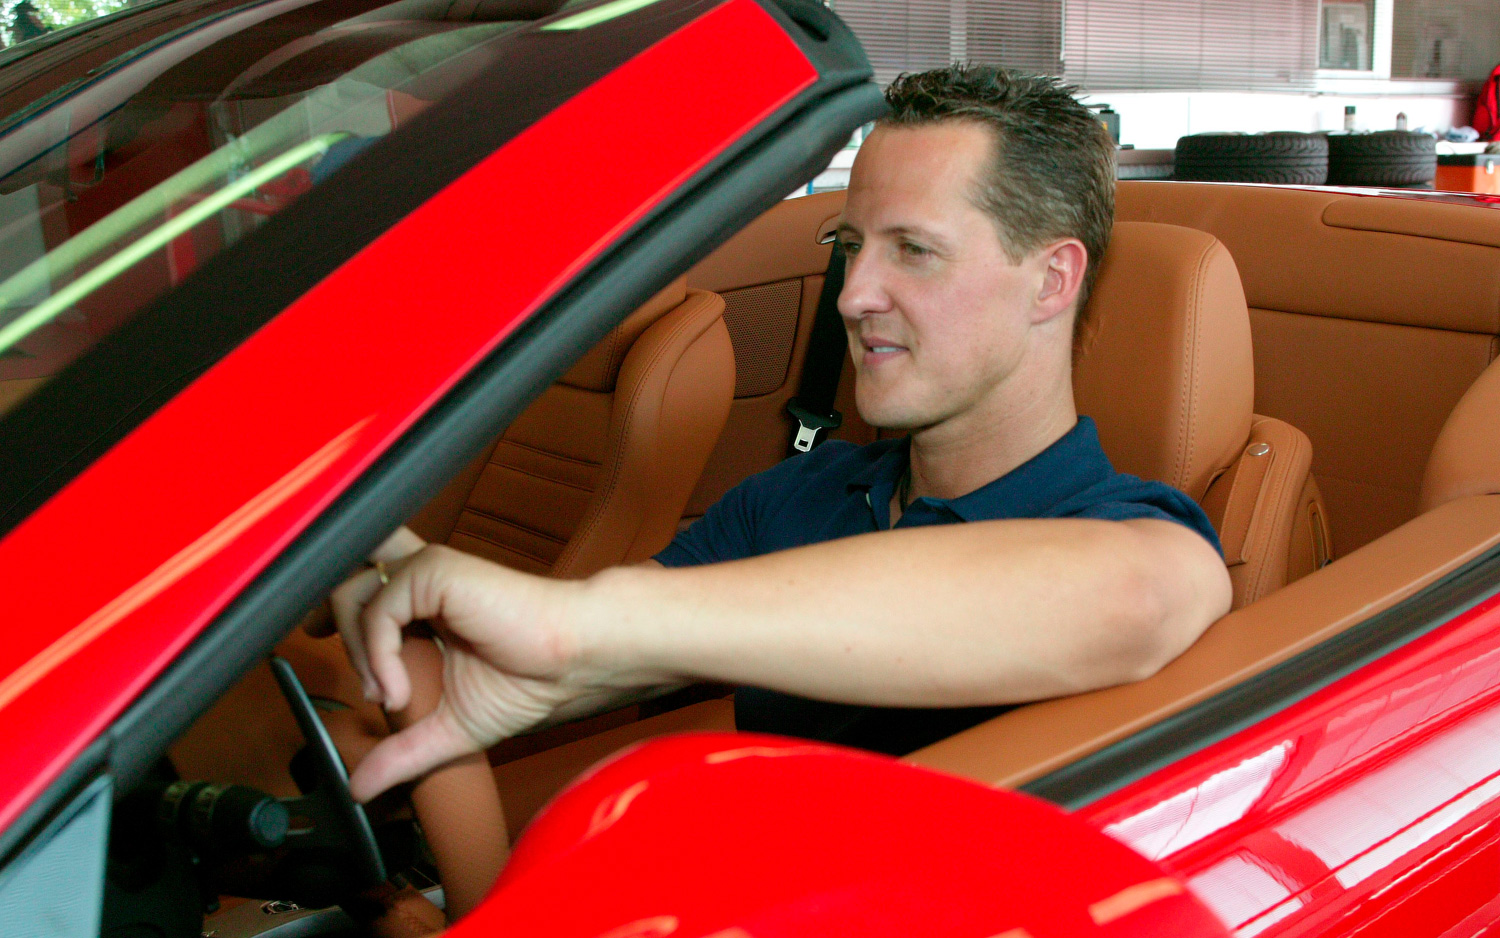 Michael Schumacher Slowly Being Brought Out of Coma